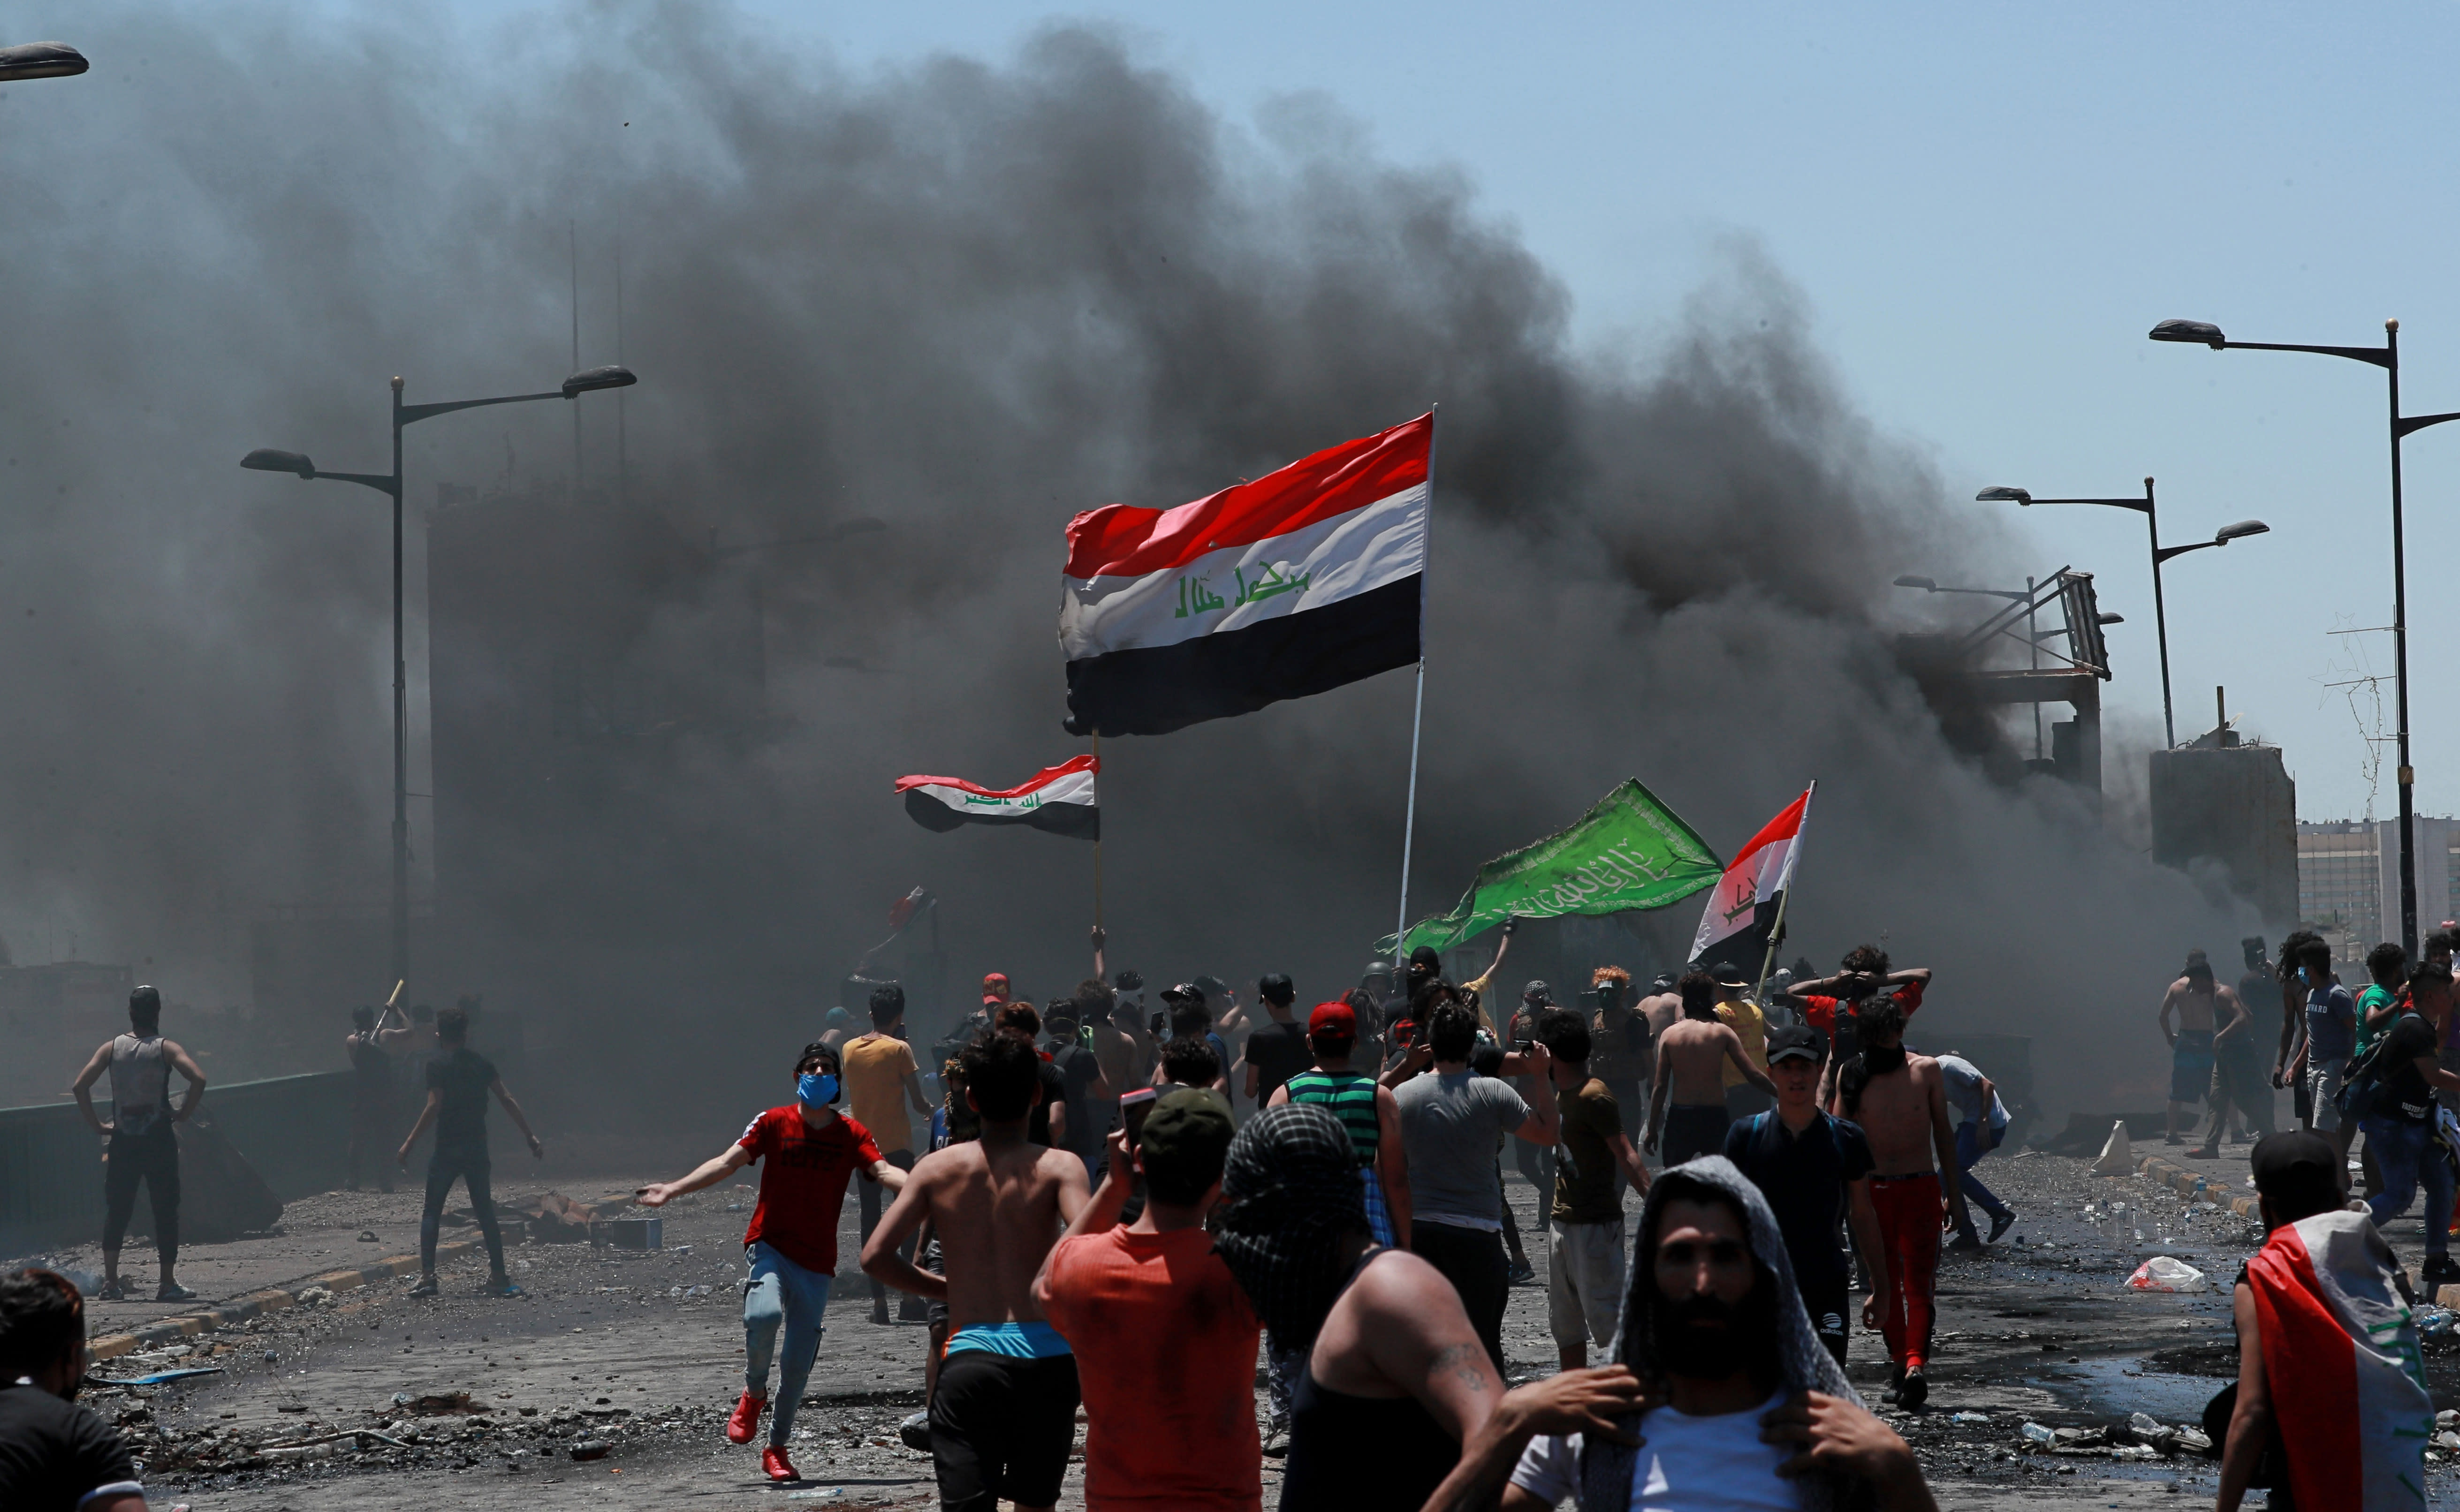 Anti-government protesters burn tires in front of barriers set up by security forces to close the Jumhuriyah Bridge leading to the Green Zone government area, during ongoing protests in Baghdad, Iraq, Sunday, May 10, 2020. Protesters were back on the streets three days after Mustafa al-Kadhimi was appointed as Iraq's new prime minister. (AP Photo/Hadi Mizban)